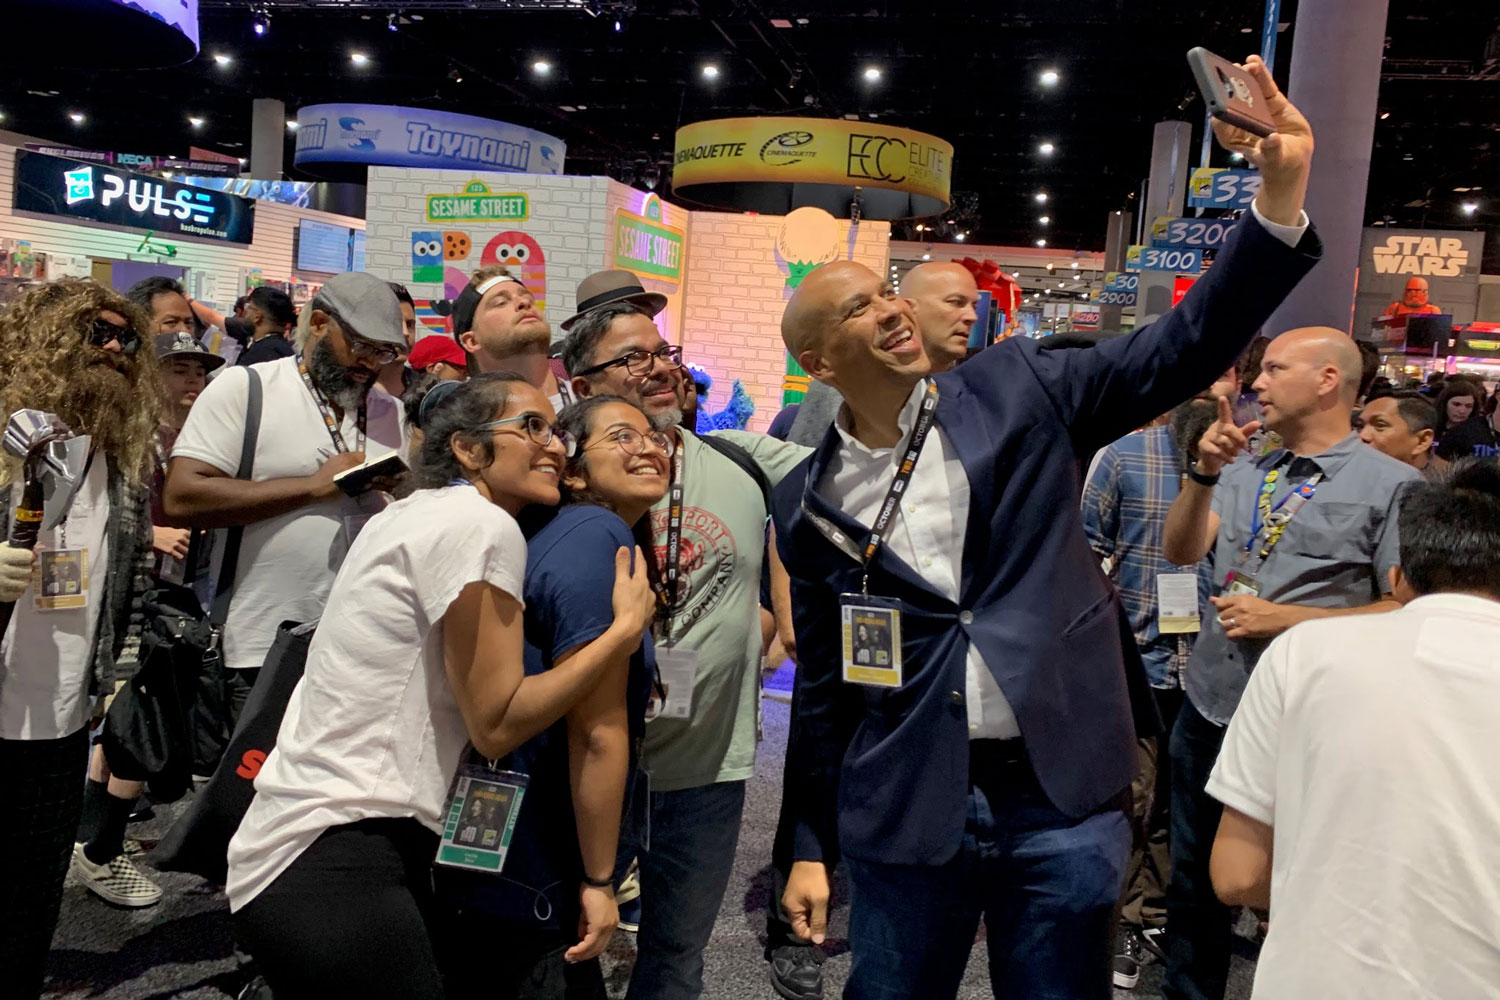 New Jersey Comic Con 2020 Cory Booker Talks Trump, Fandom and 2020 at Comic Con – Rolling Stone